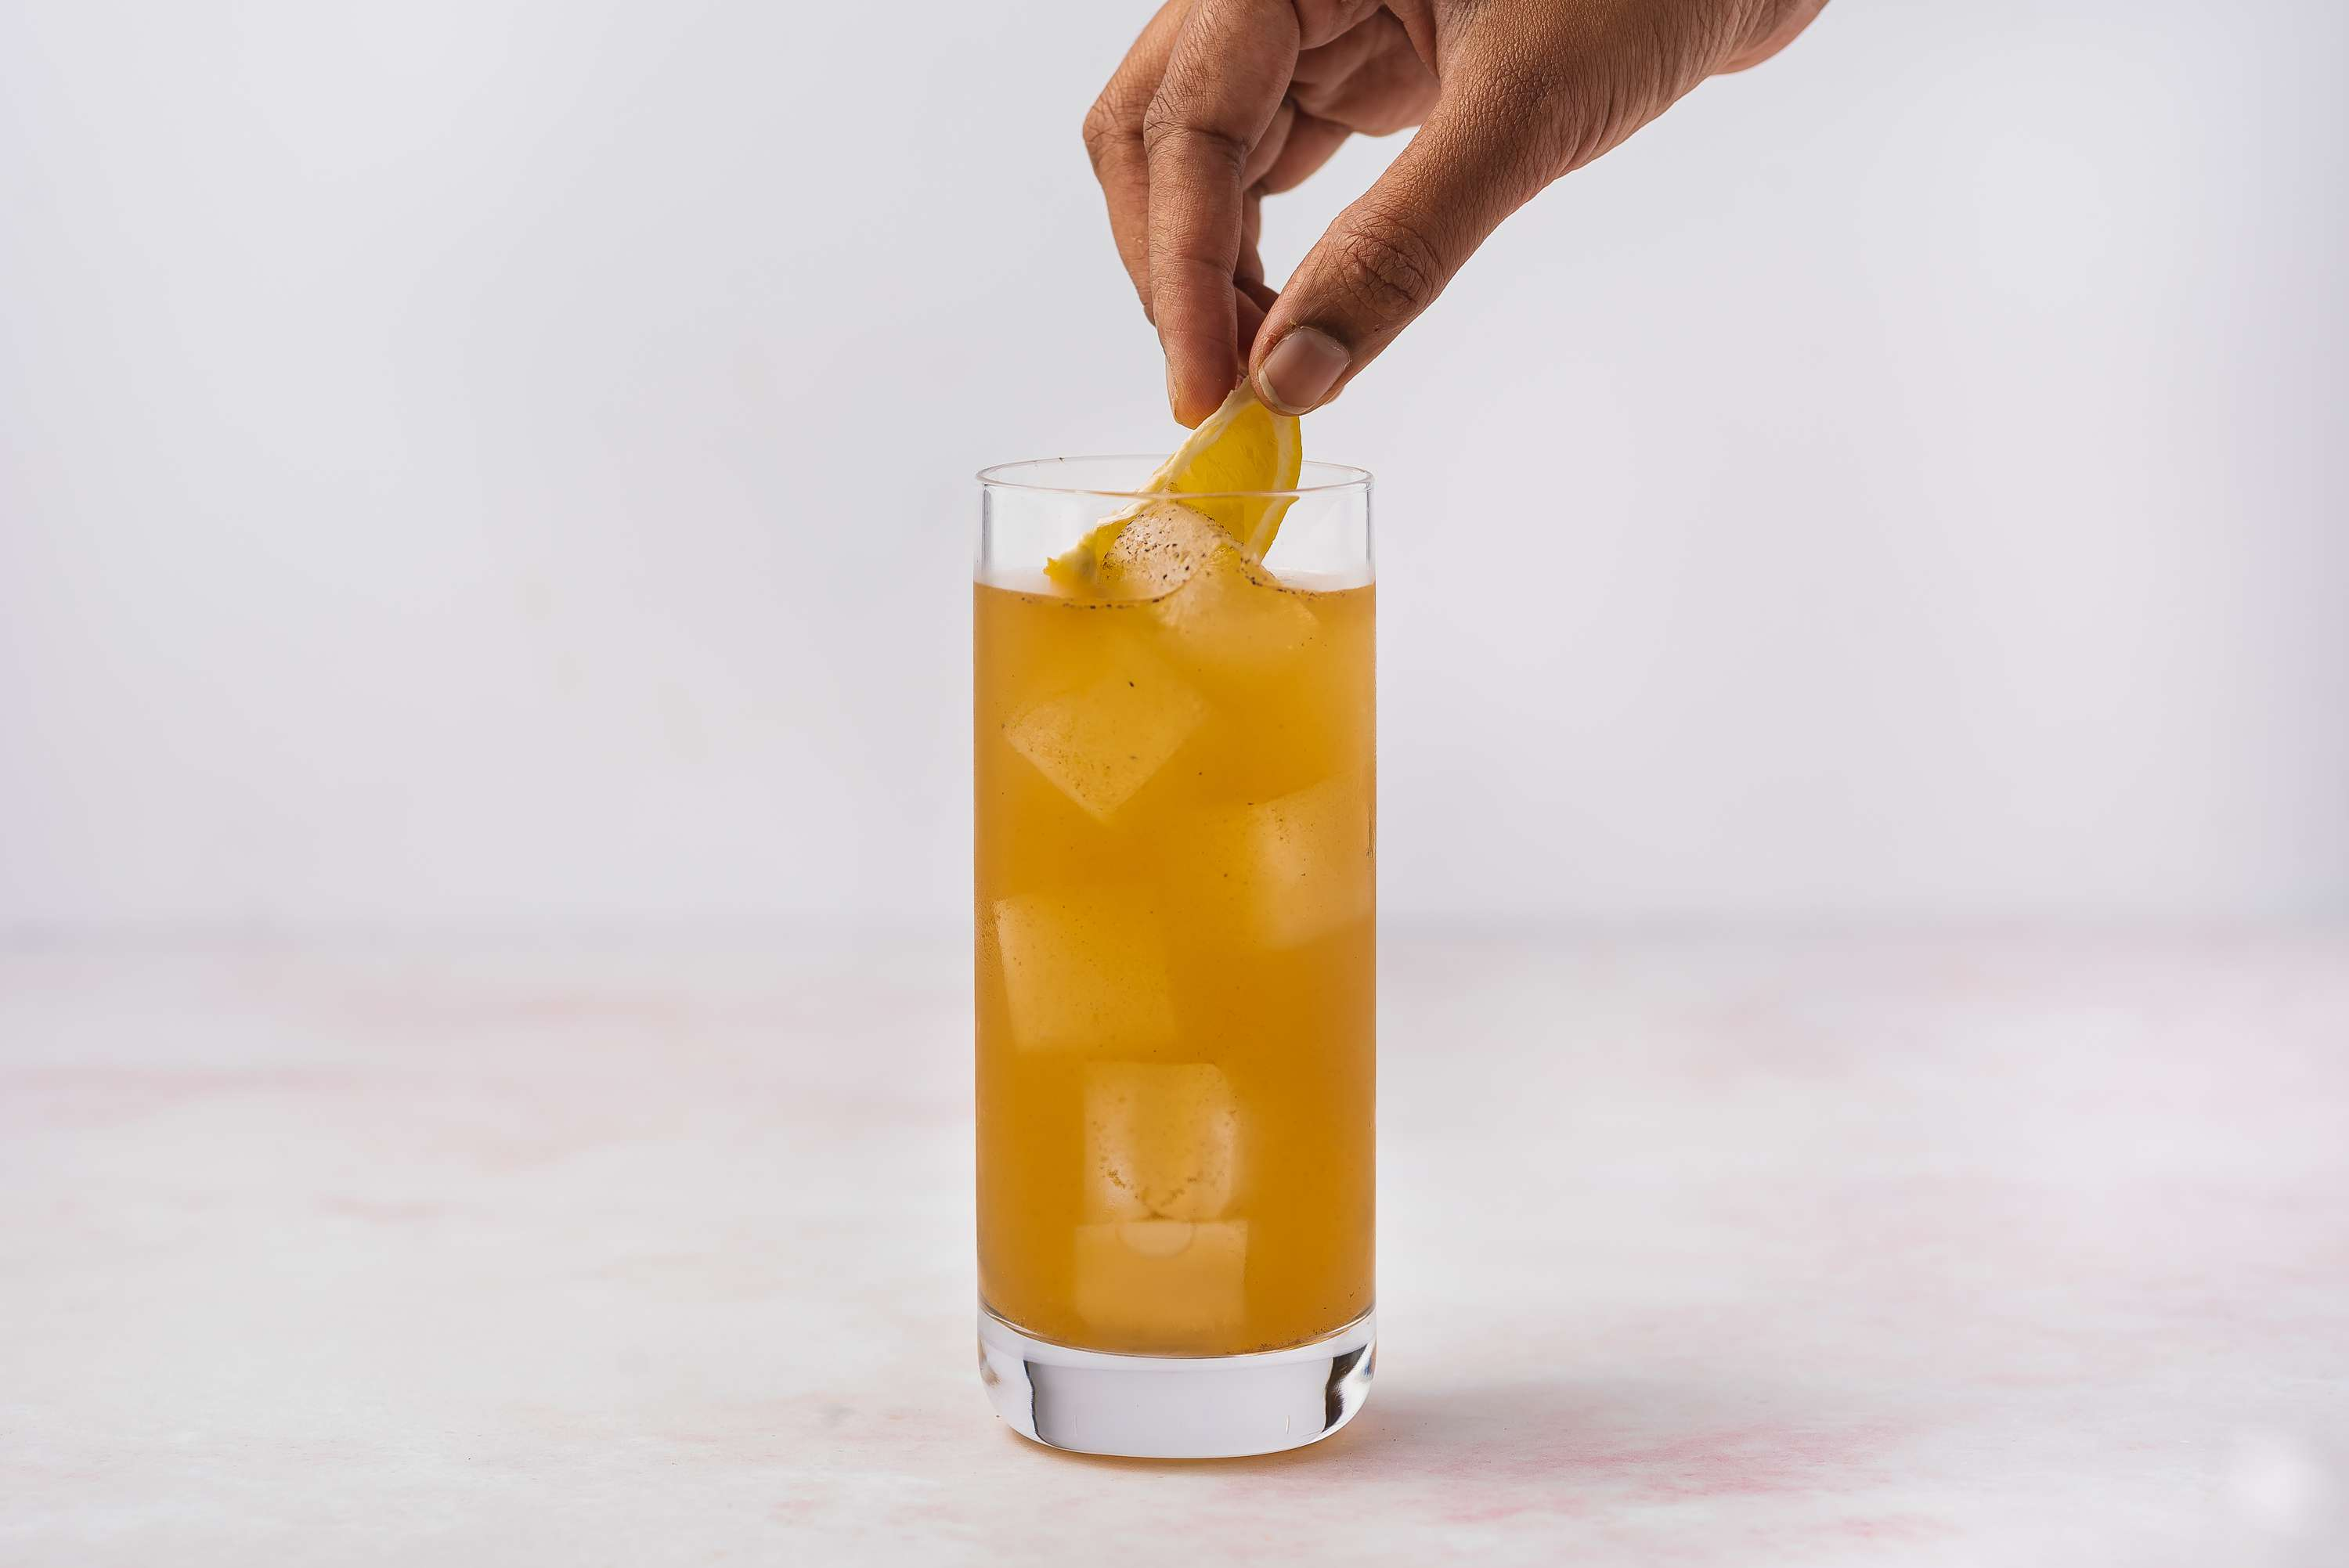 Savory Beef Broth and Vodka Bull cocktail